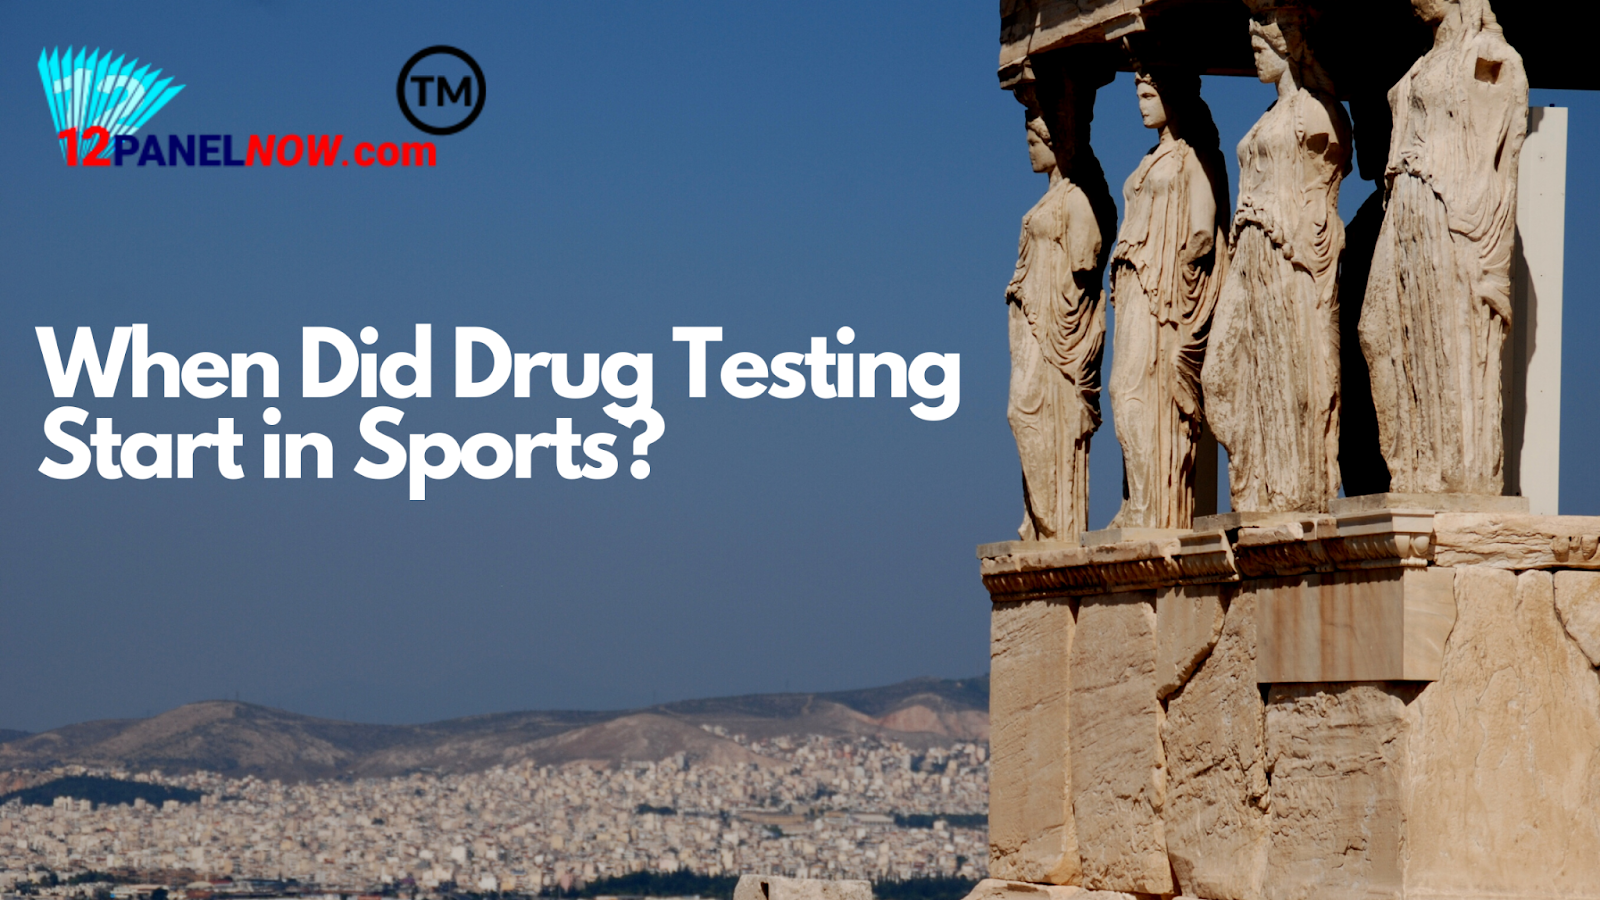 When Did Drug Testing Start in Sports?